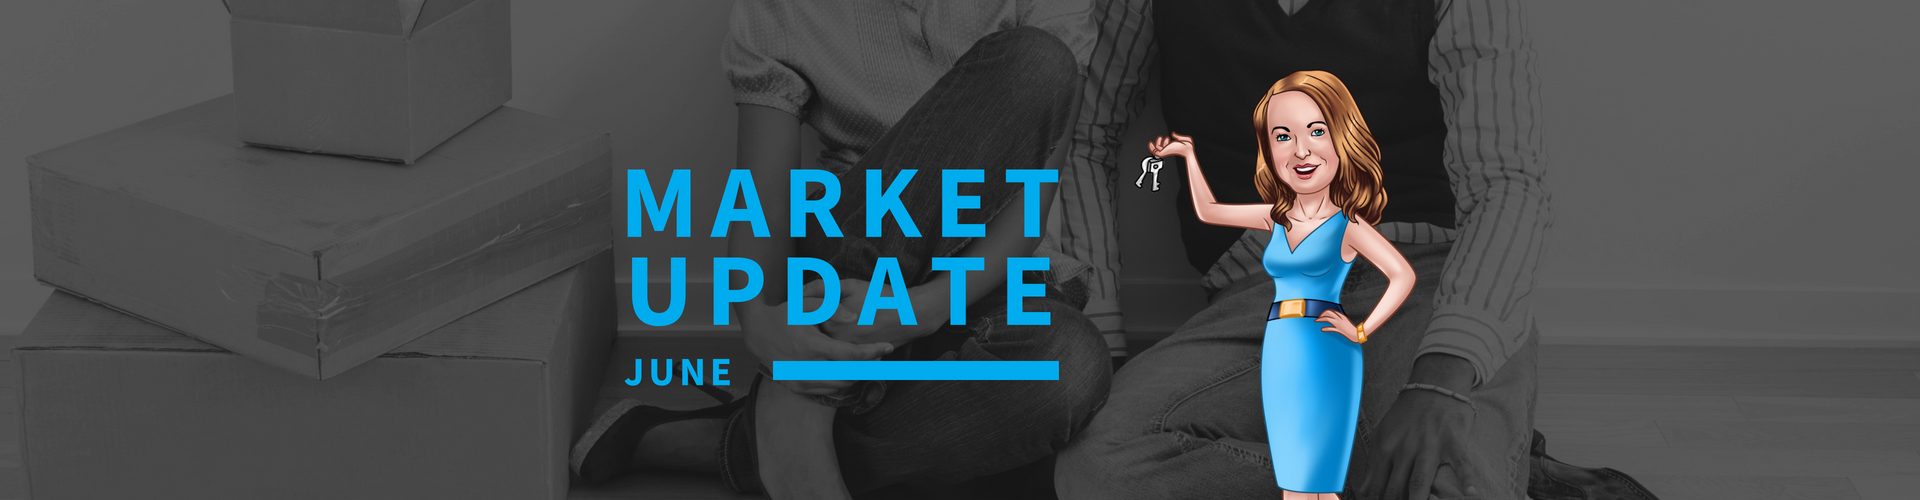 June Market Update